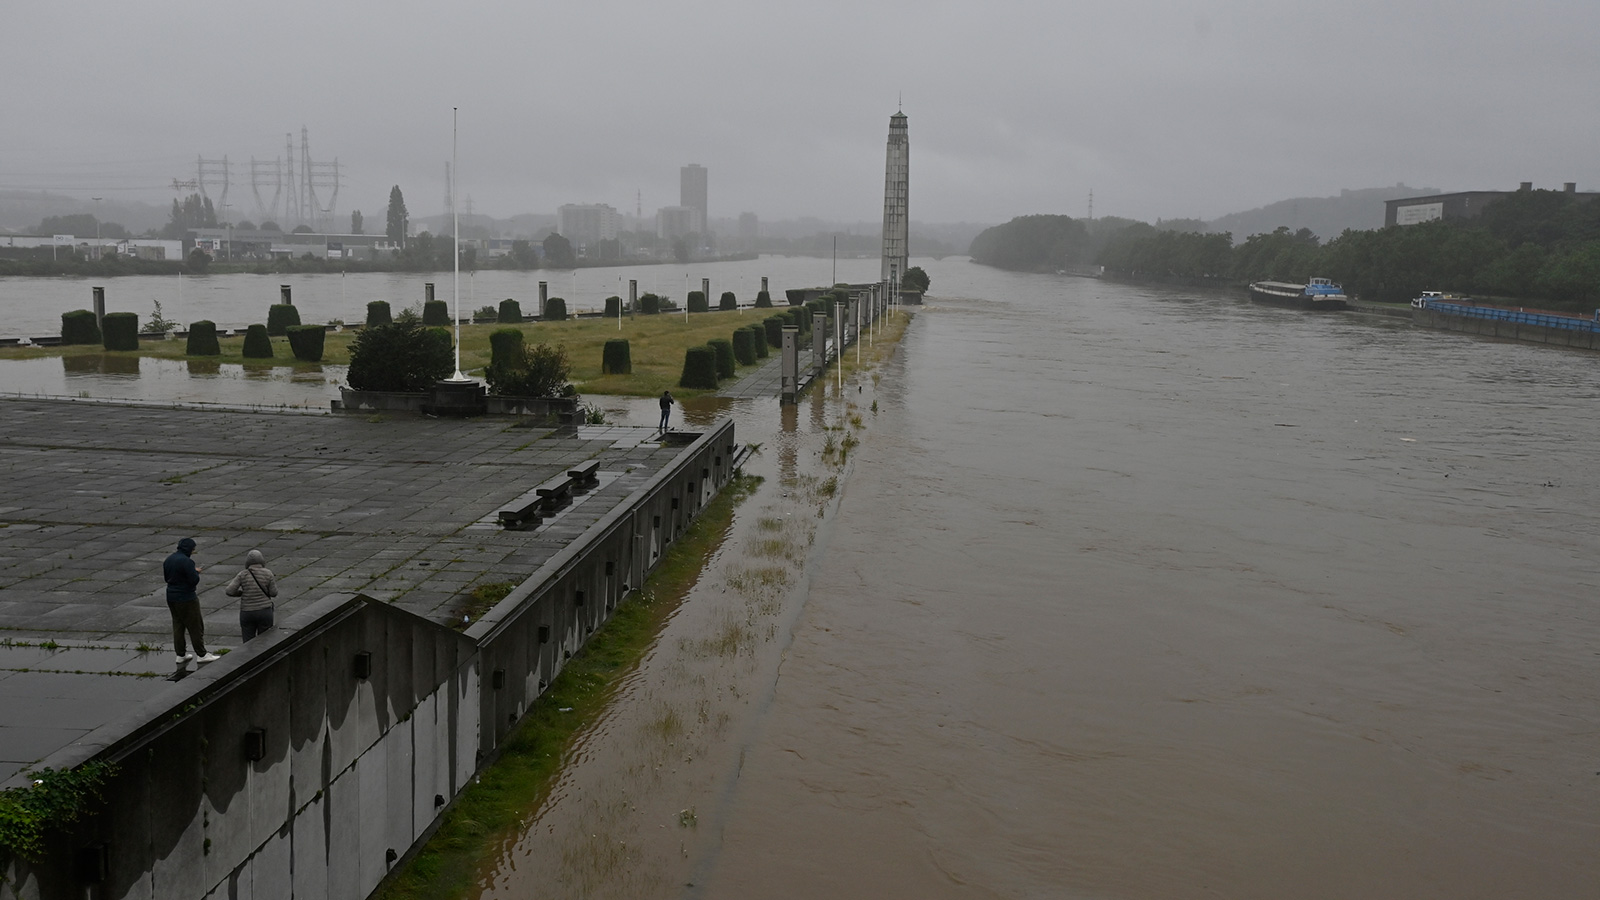 Illustration showsfloods at the Monsin dam bridge in Liege after heavy rainfall on Thursday.